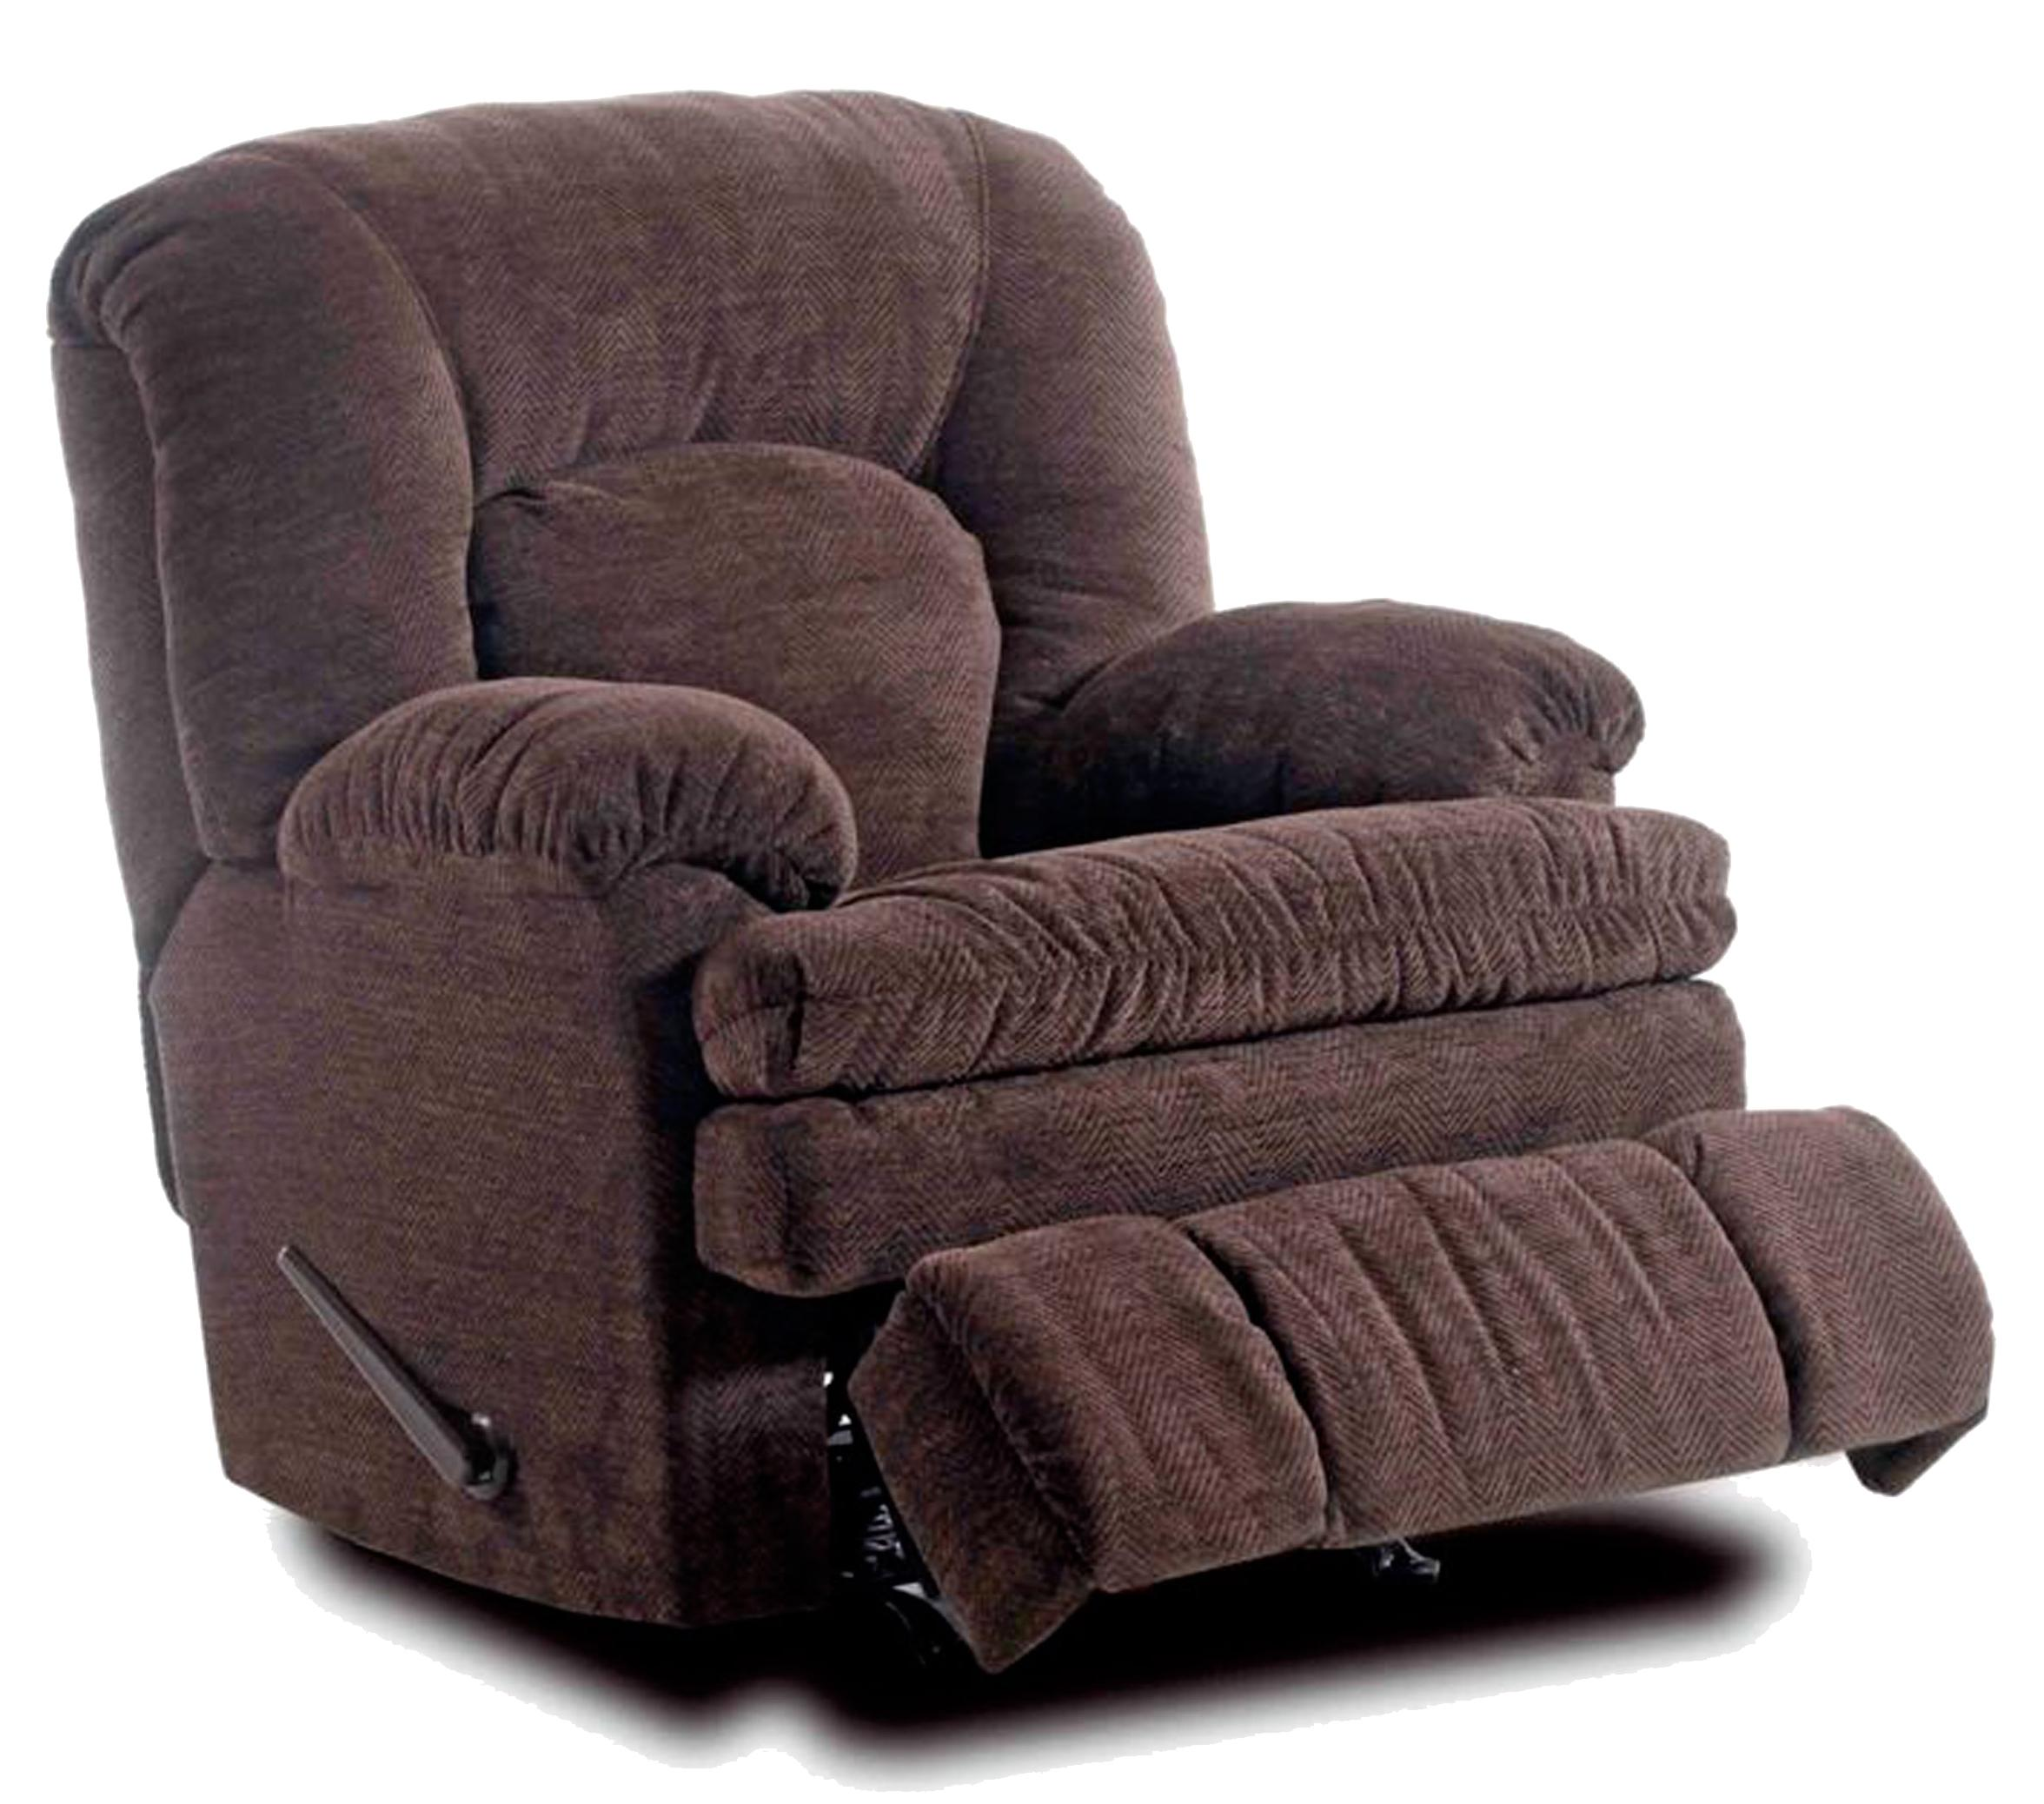 HomeStretch 103 Chocolate Series Rocker Recliner - Item Number: 103-91-22